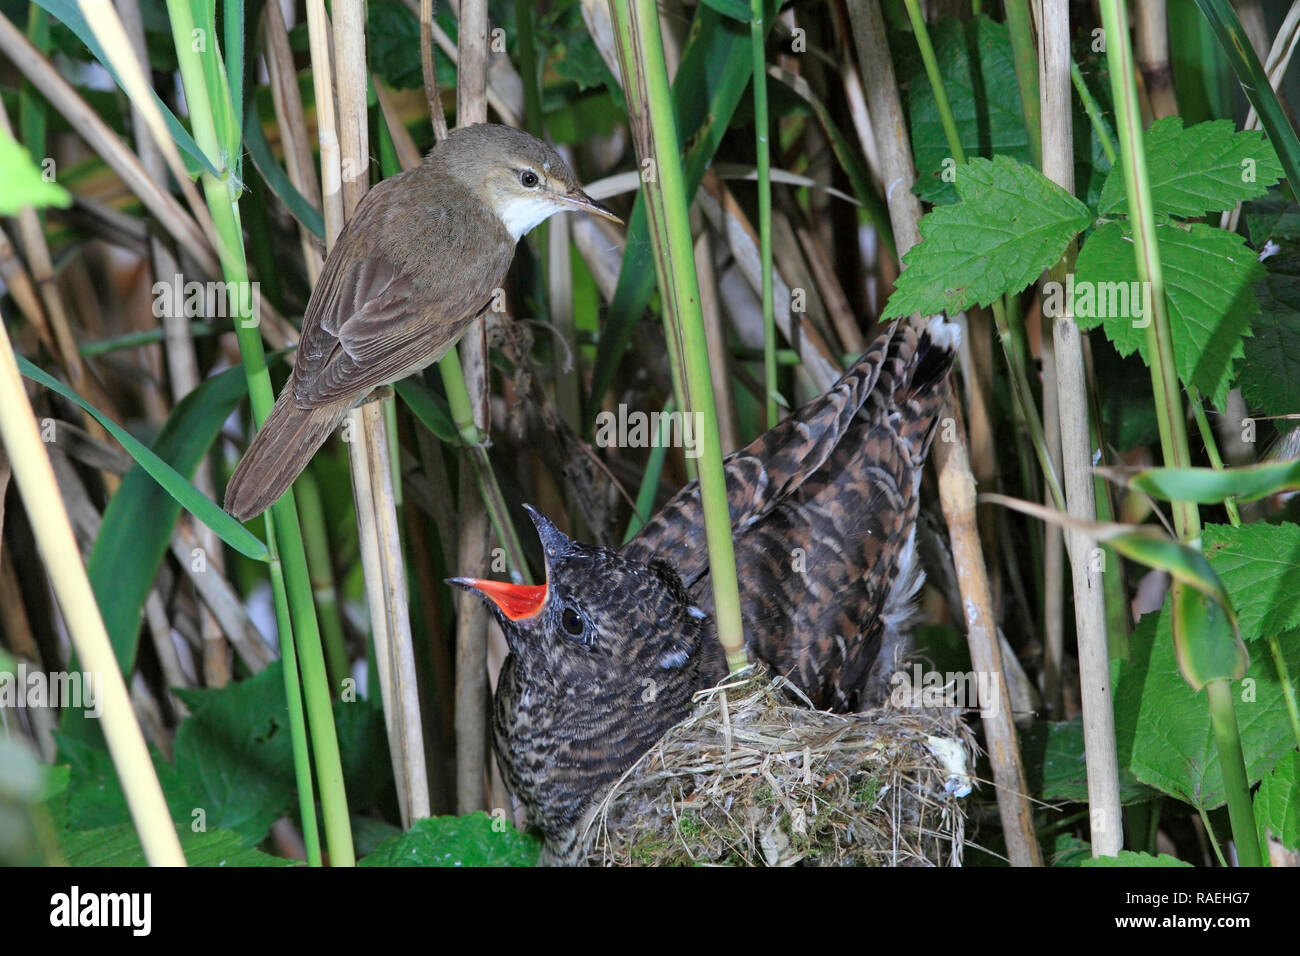 CUCKOO parasite (Cuculus canorus) with foster parent, UK. - Stock Image